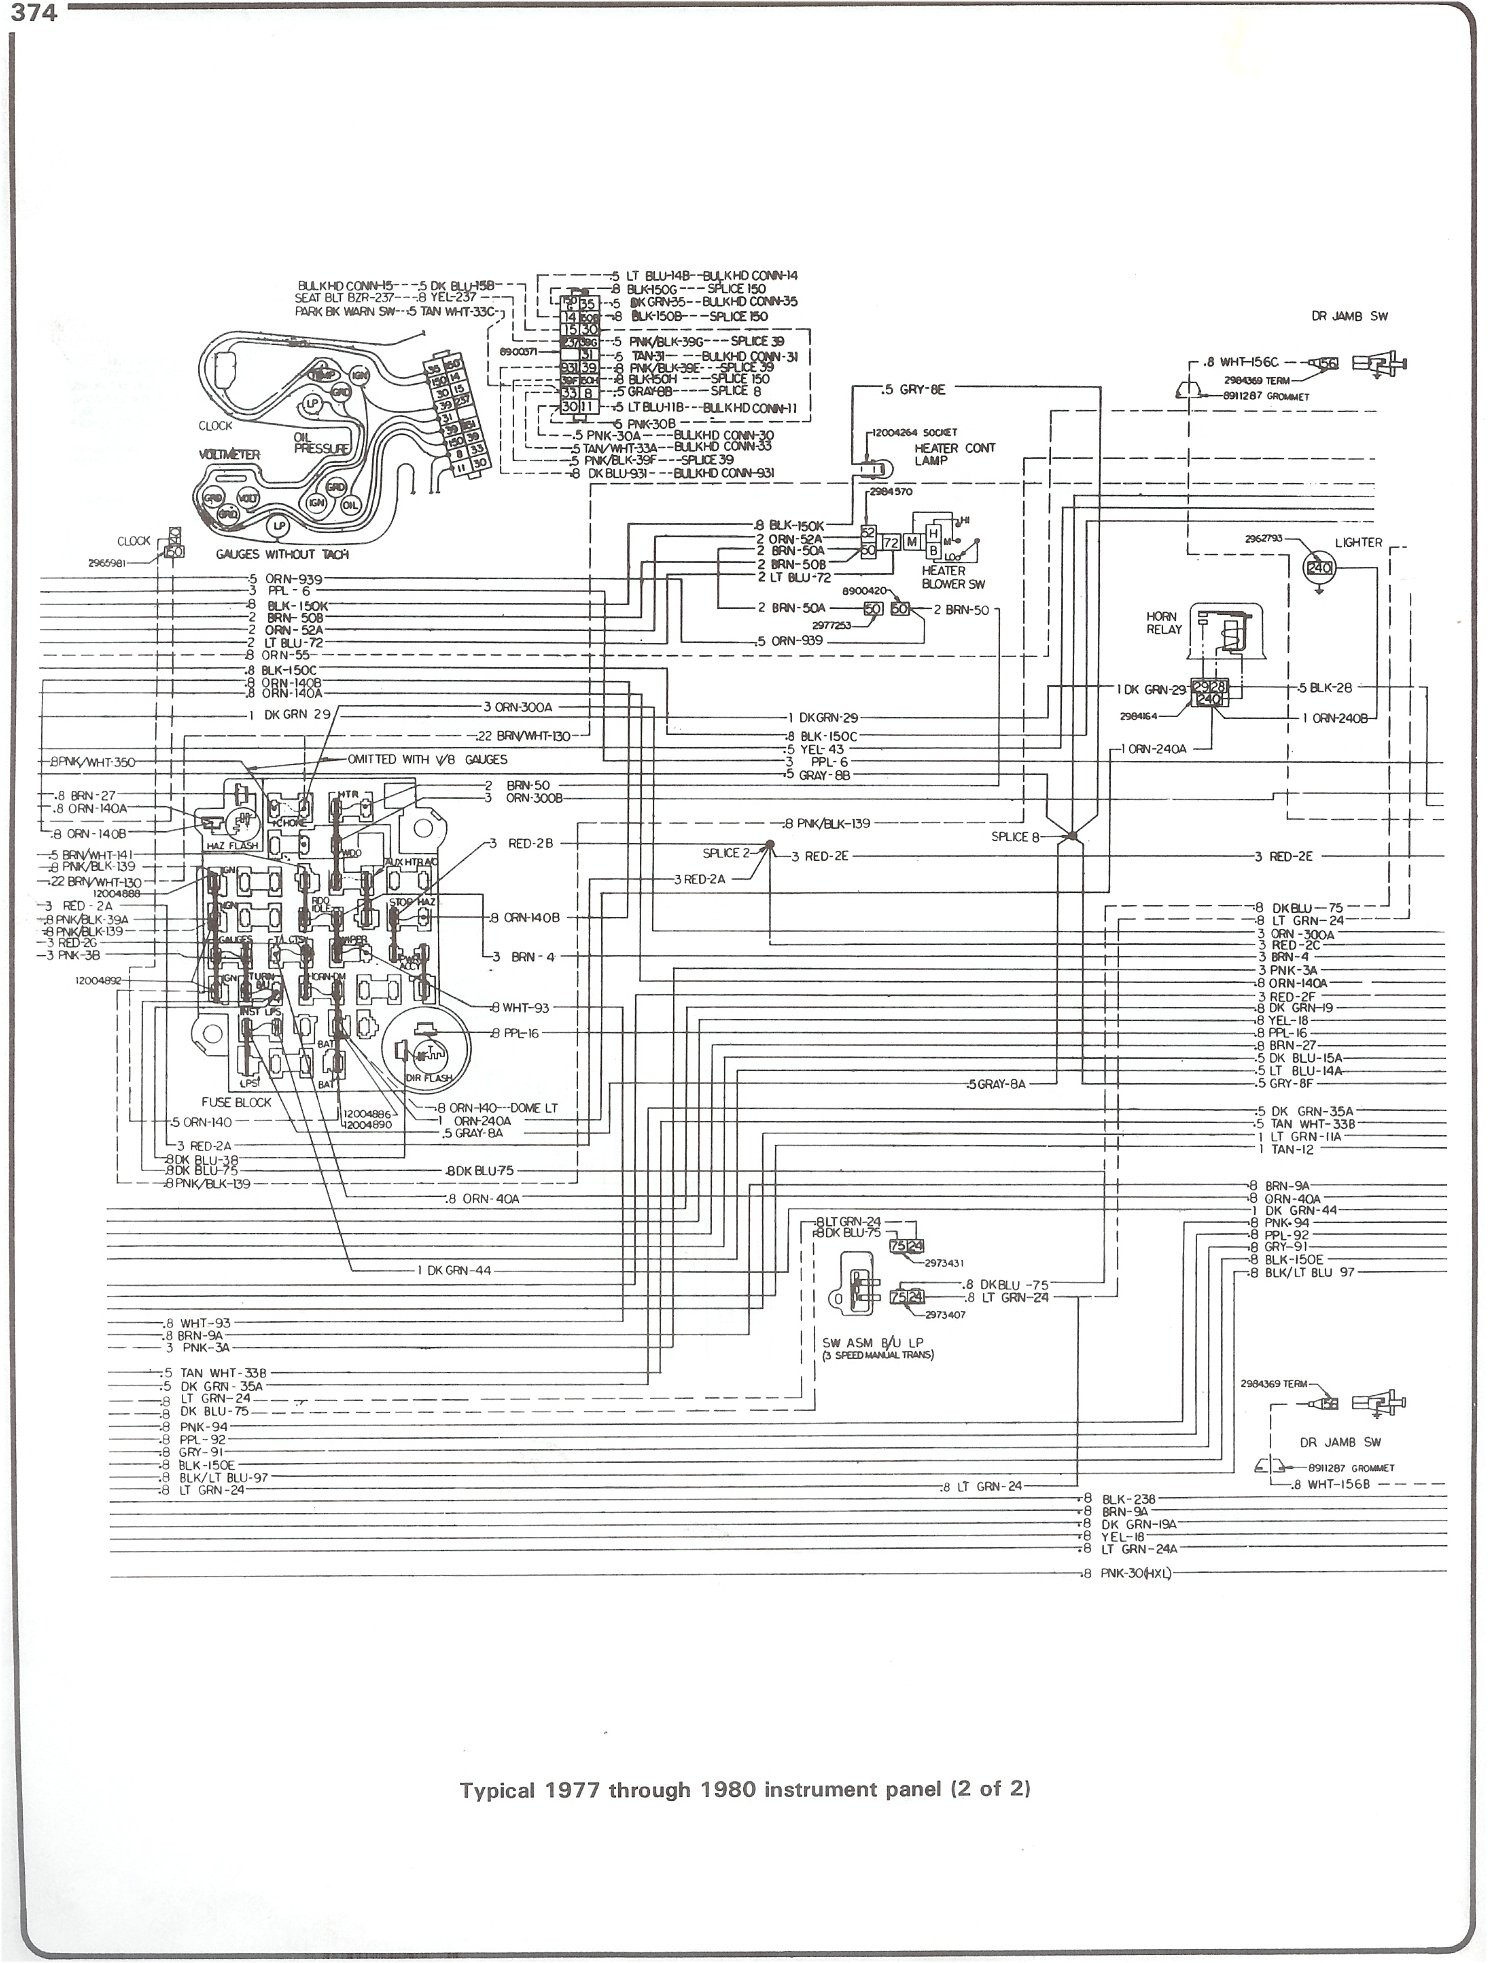 78 chevrolet pickup 350 wiring wiring diagram data schema  78 chevrolet pickup 350 wiring diagram basic electronics wiring 78 chevrolet pickup 350 wiring